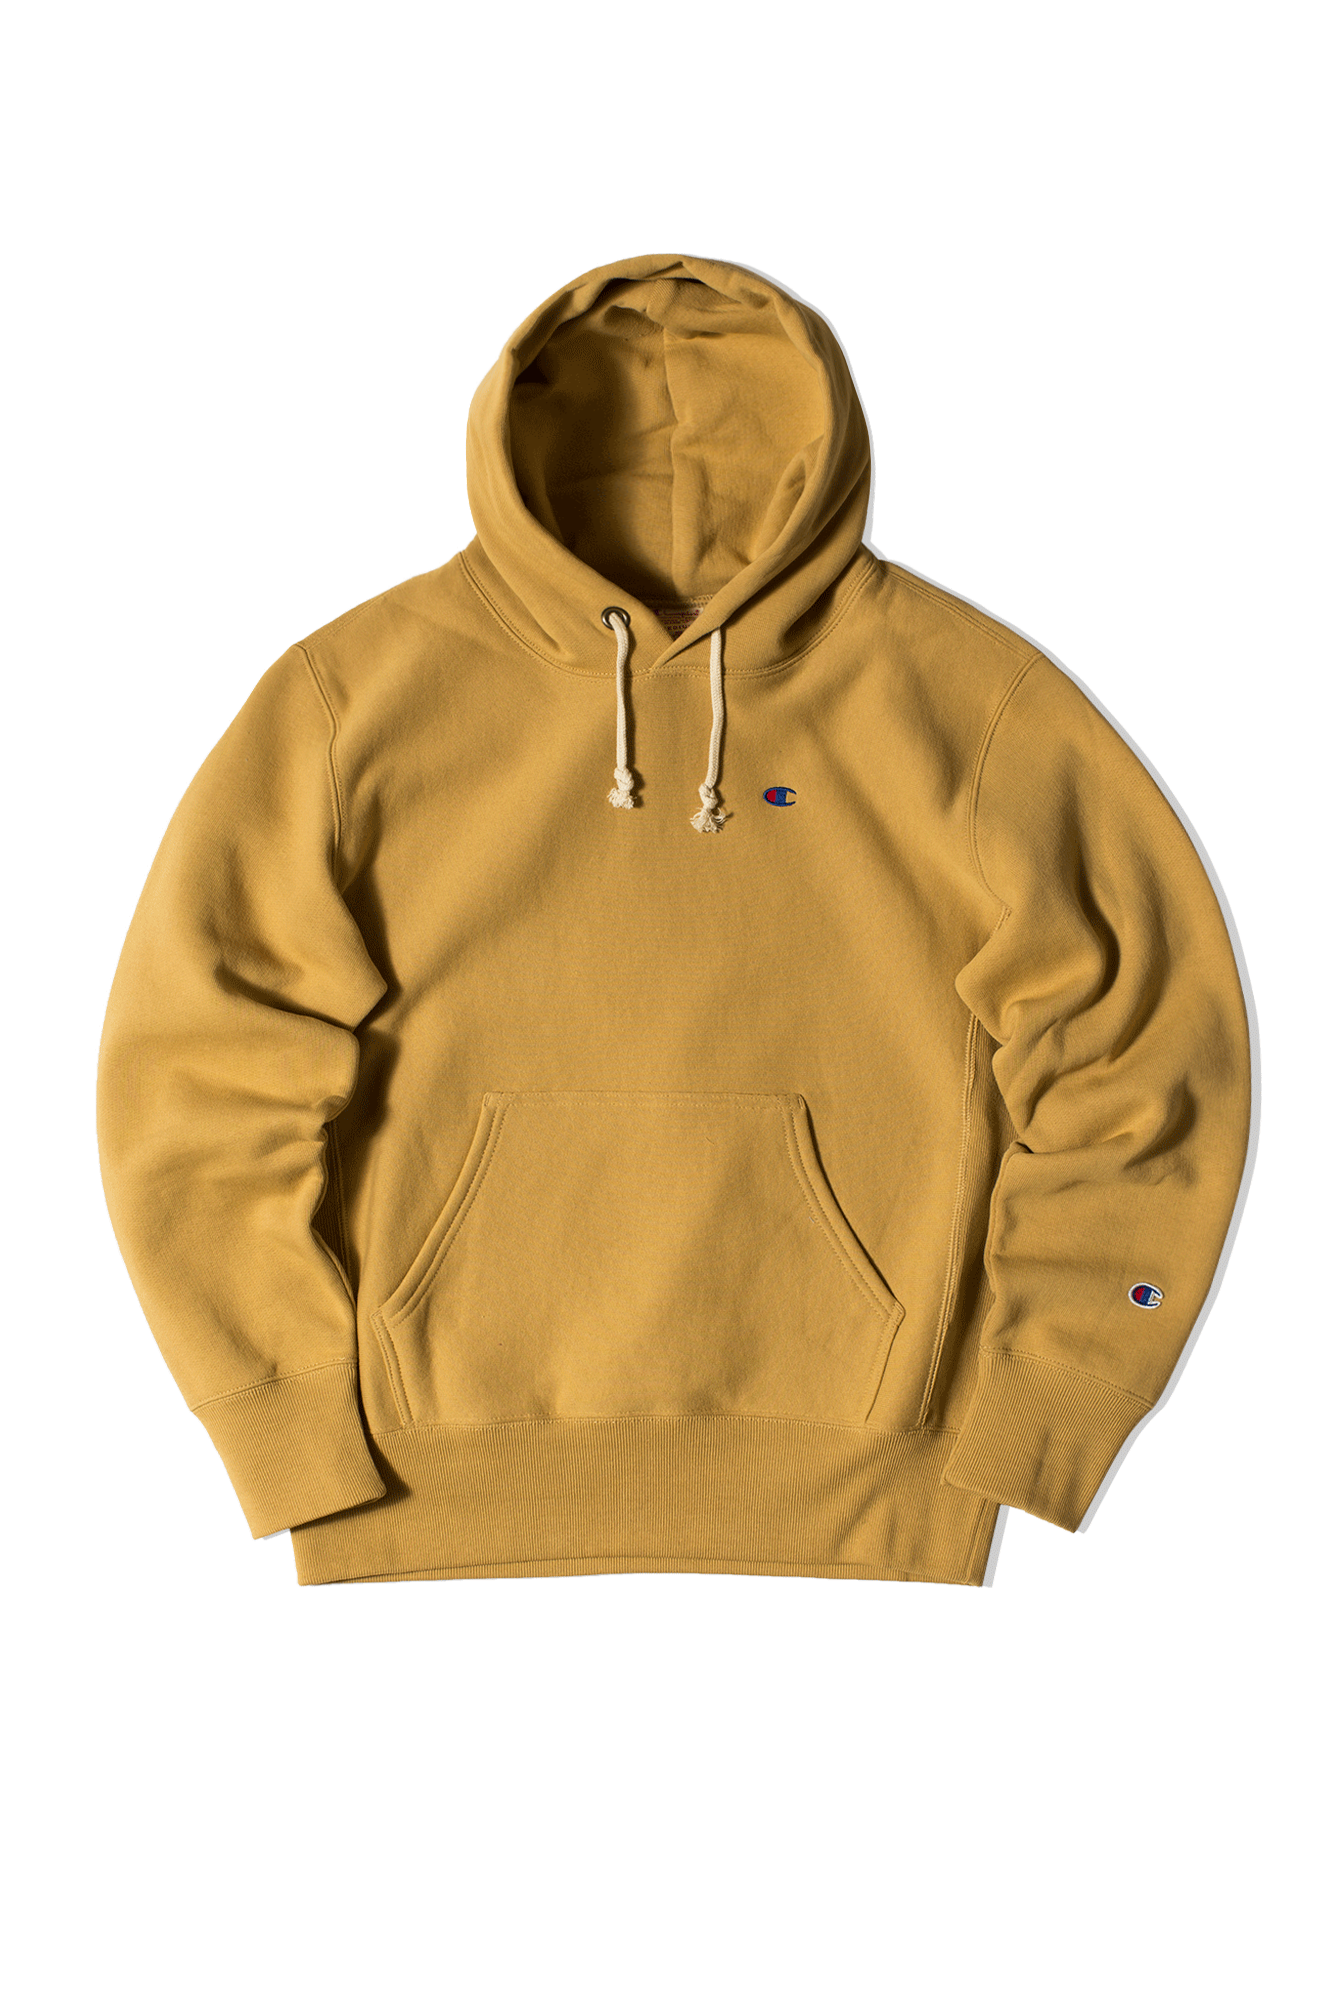 Champion Hooded sweatshirts Hooded sweatshirt Yellow 214675#000#YS067#M - One Block Down